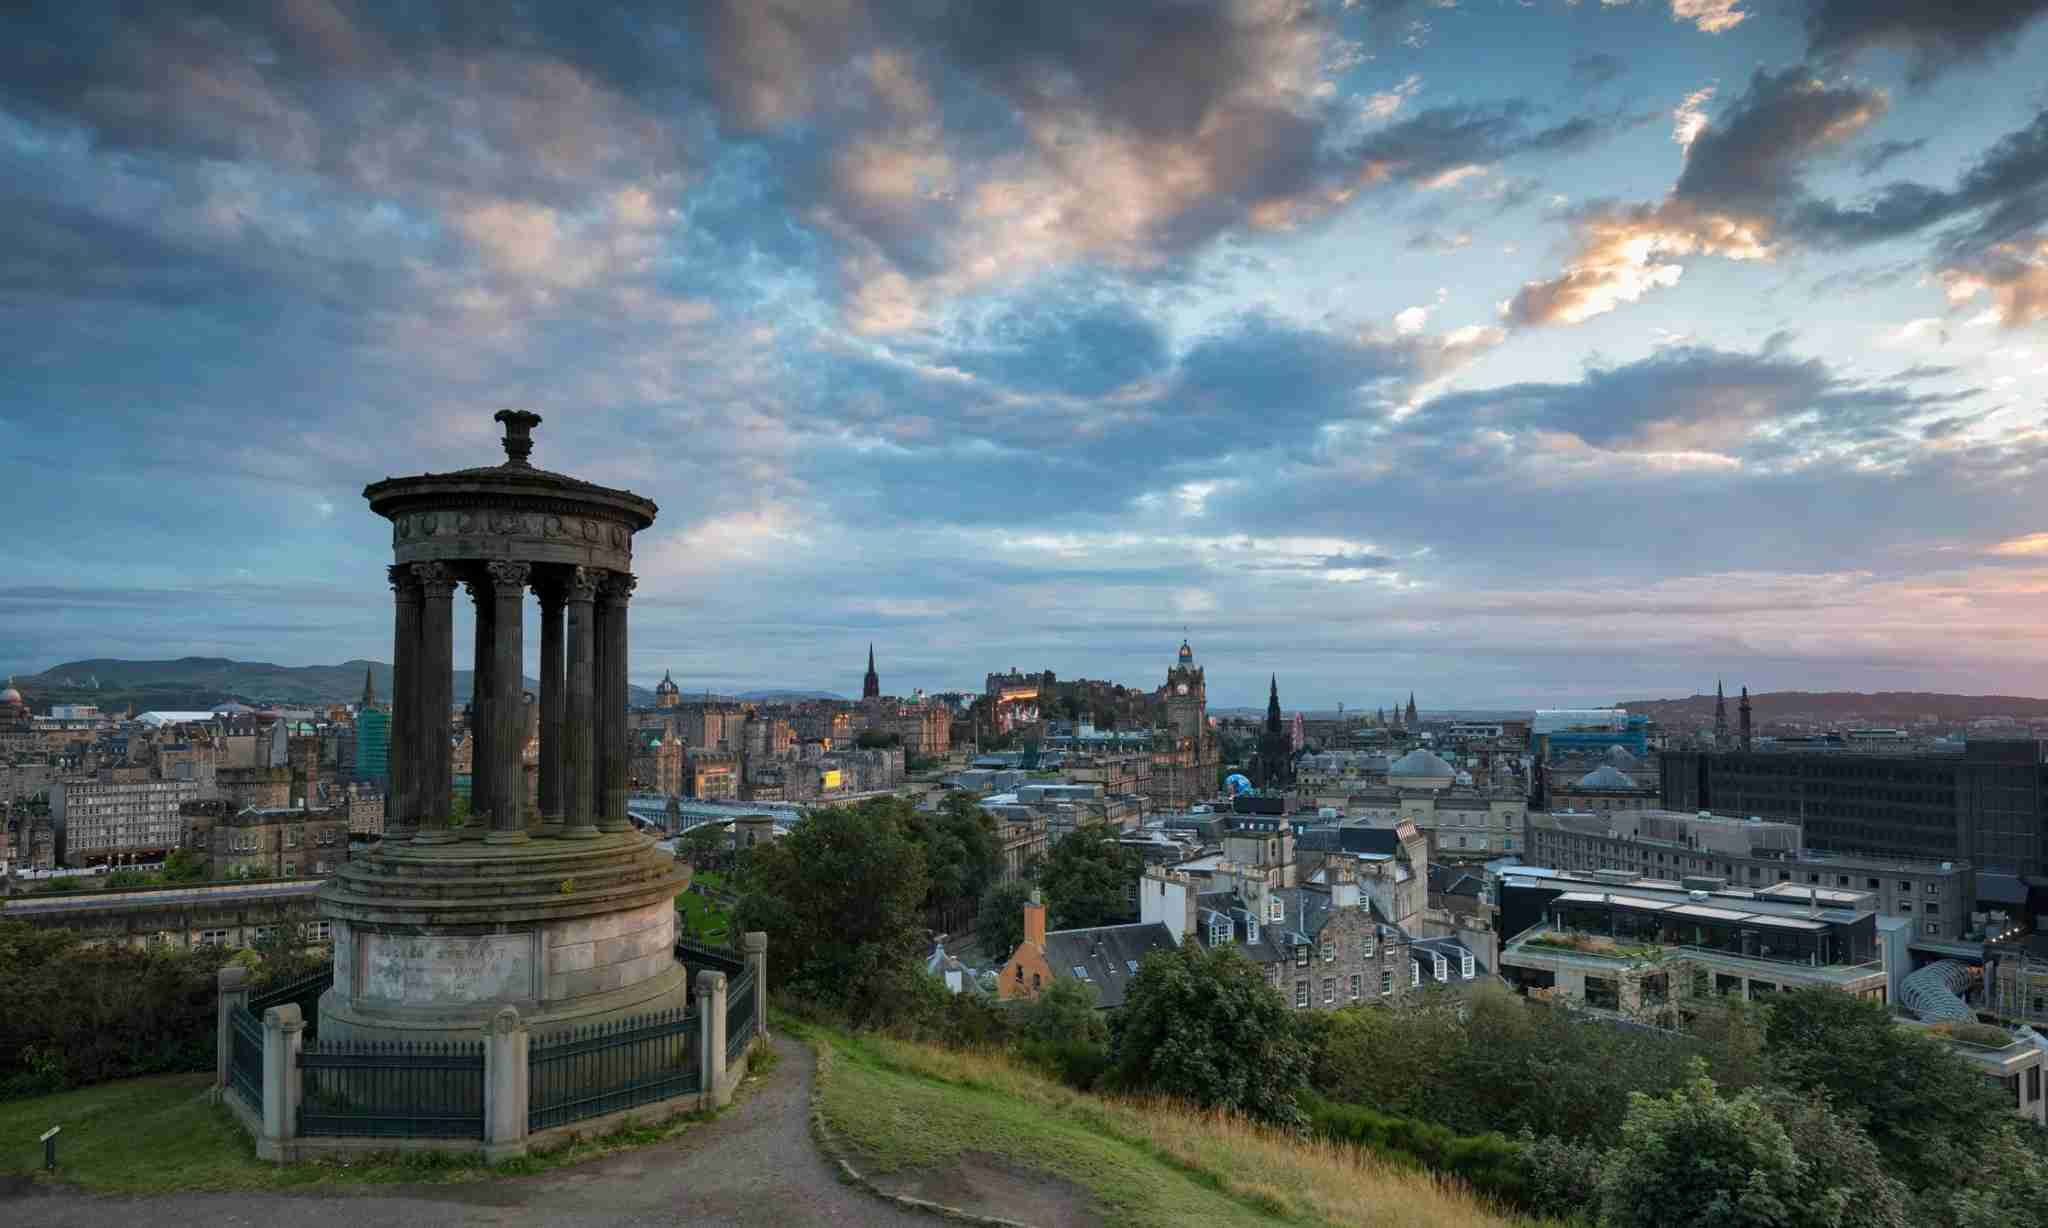 Fly from Philadelphia to Edinburgh, Scotland, thanks to new seasonal service from American Airlines. (Photo by Markus Keller / Getty Images)